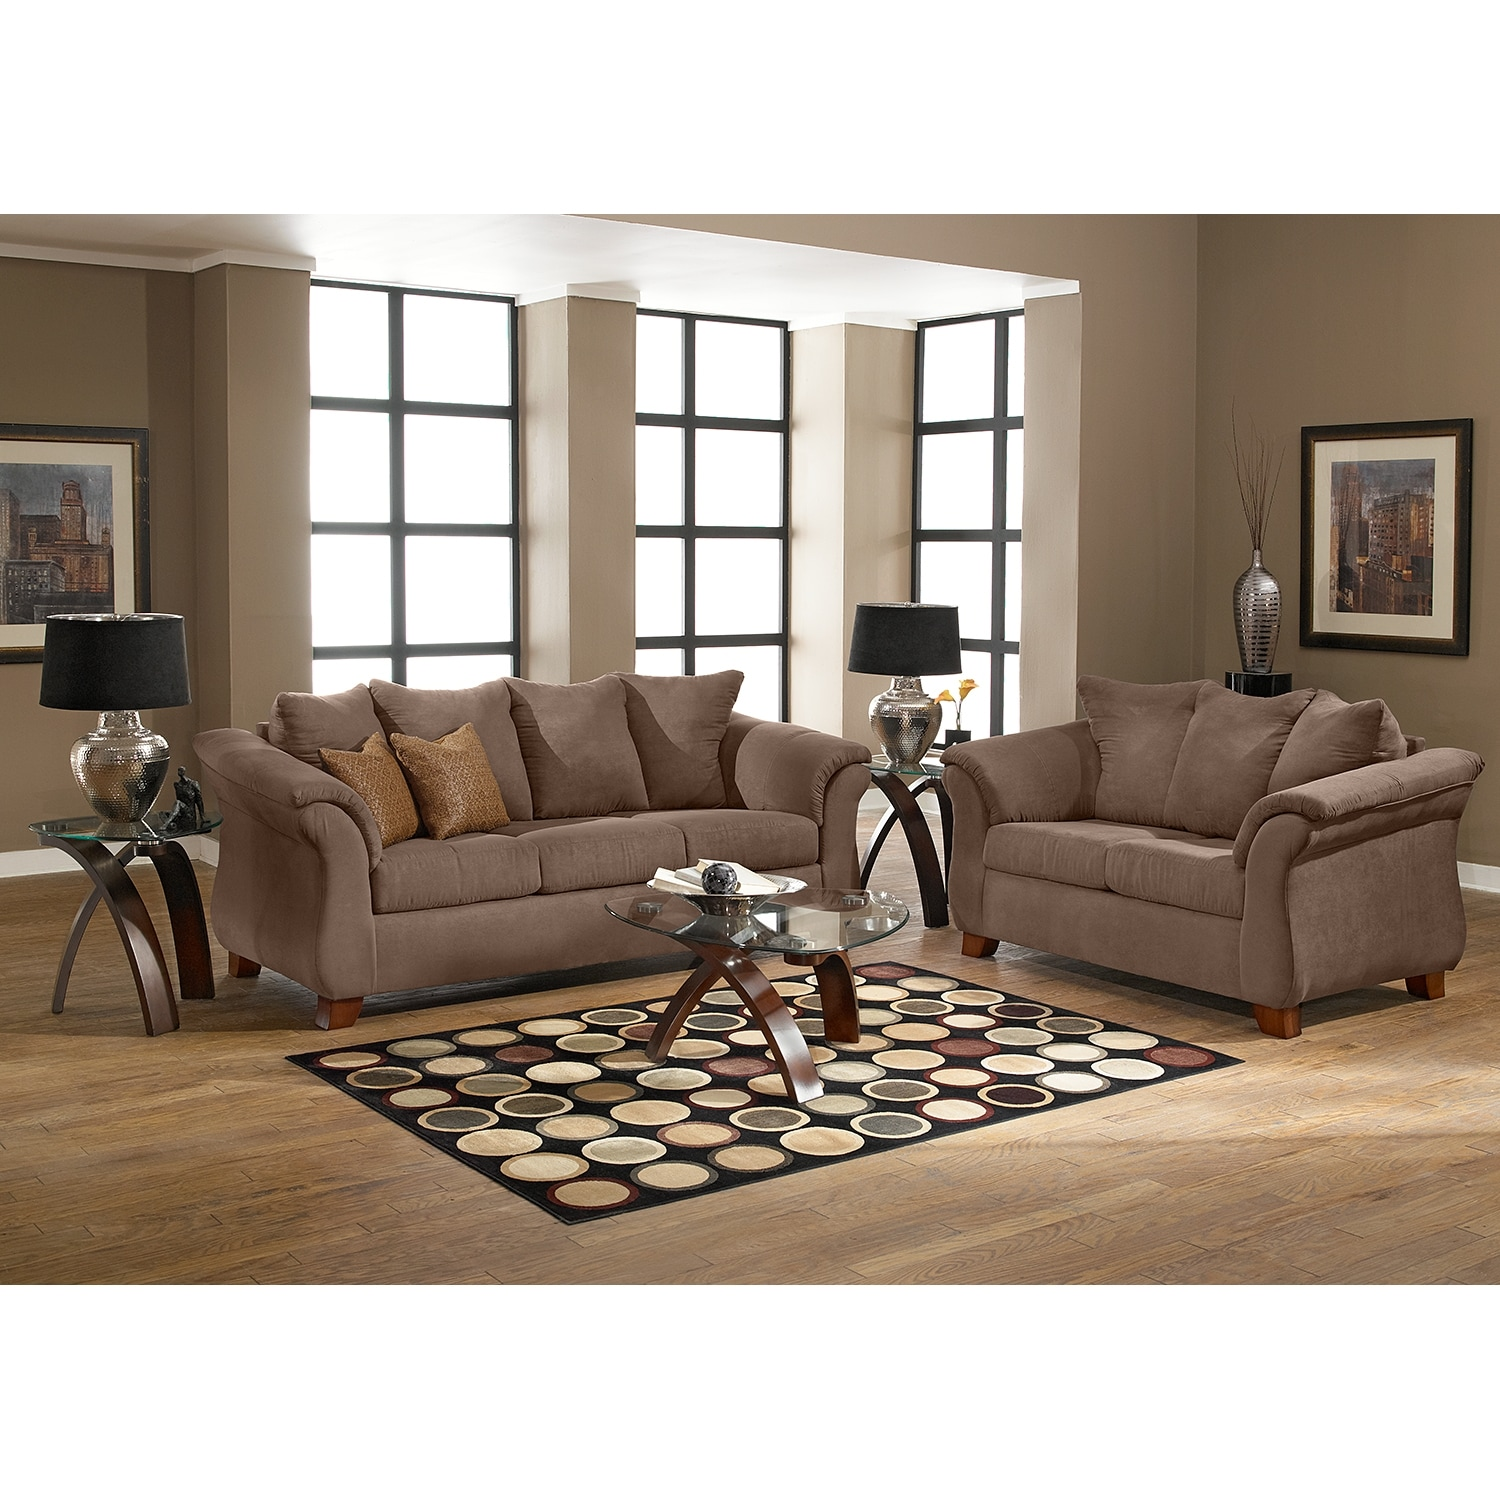 Livingroomfurniture: Value City Furniture